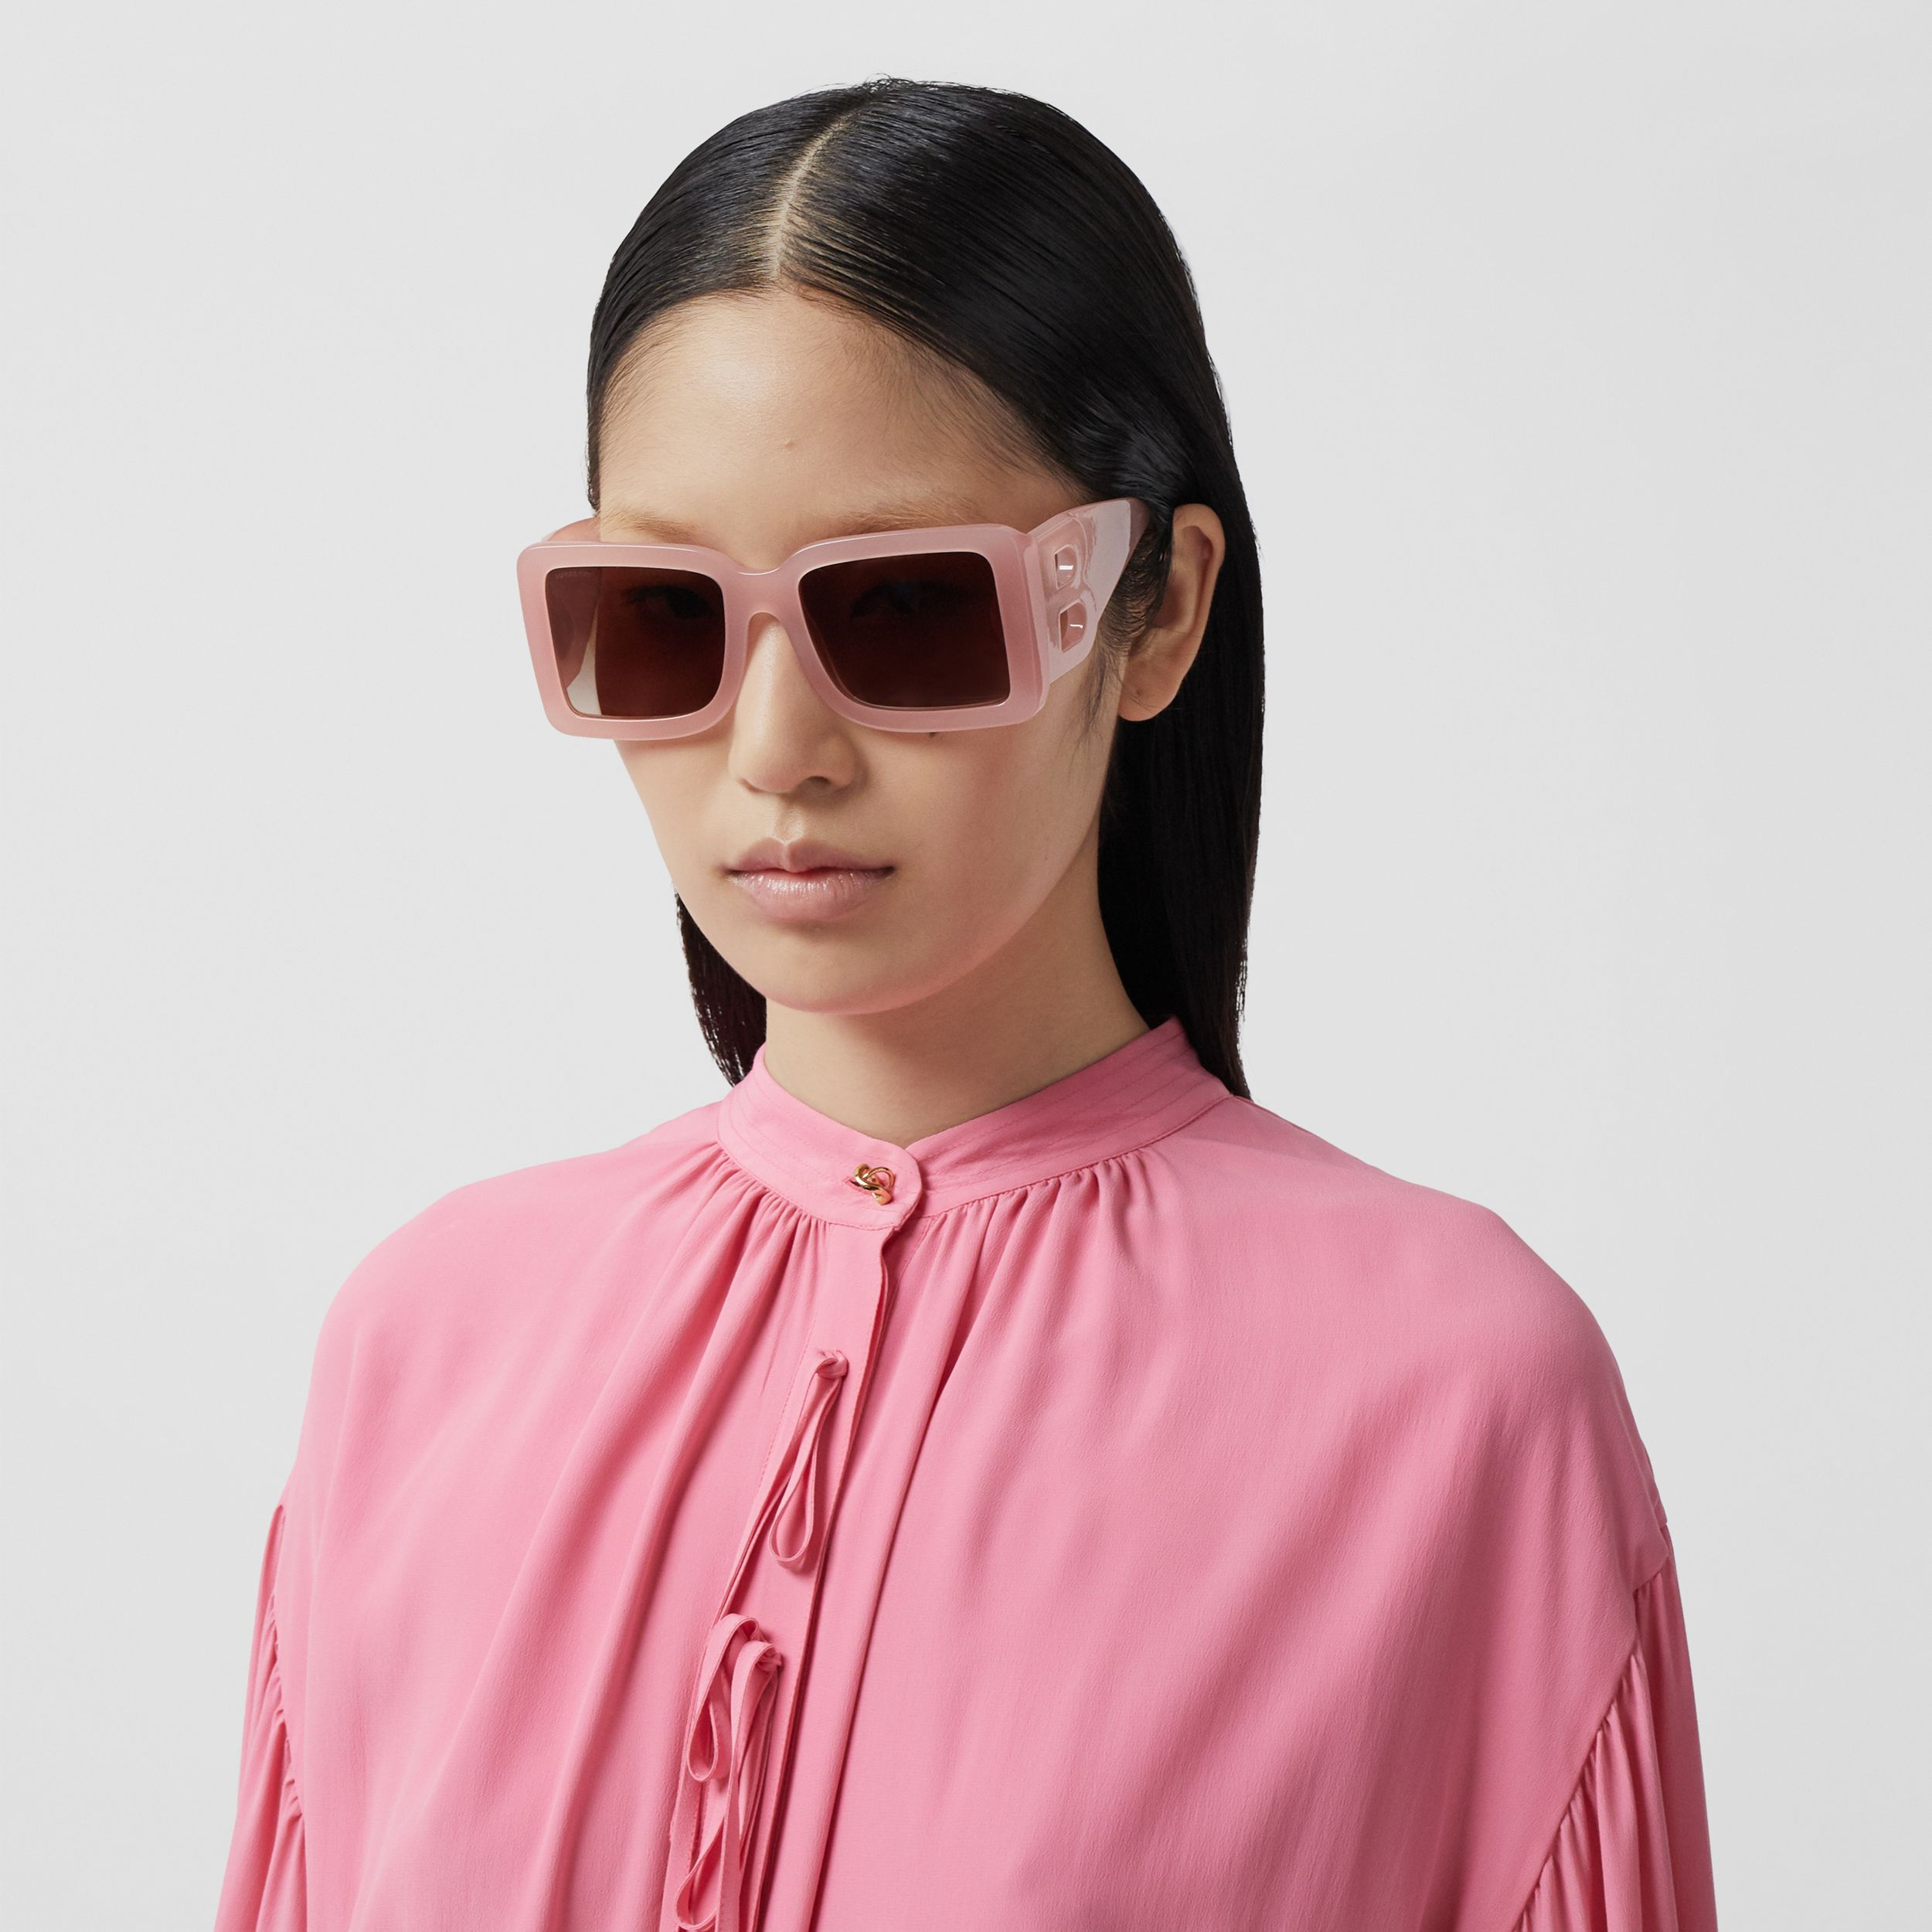 B Motif Square Frame Sunglasses in Pink - Women | Burberry - 3